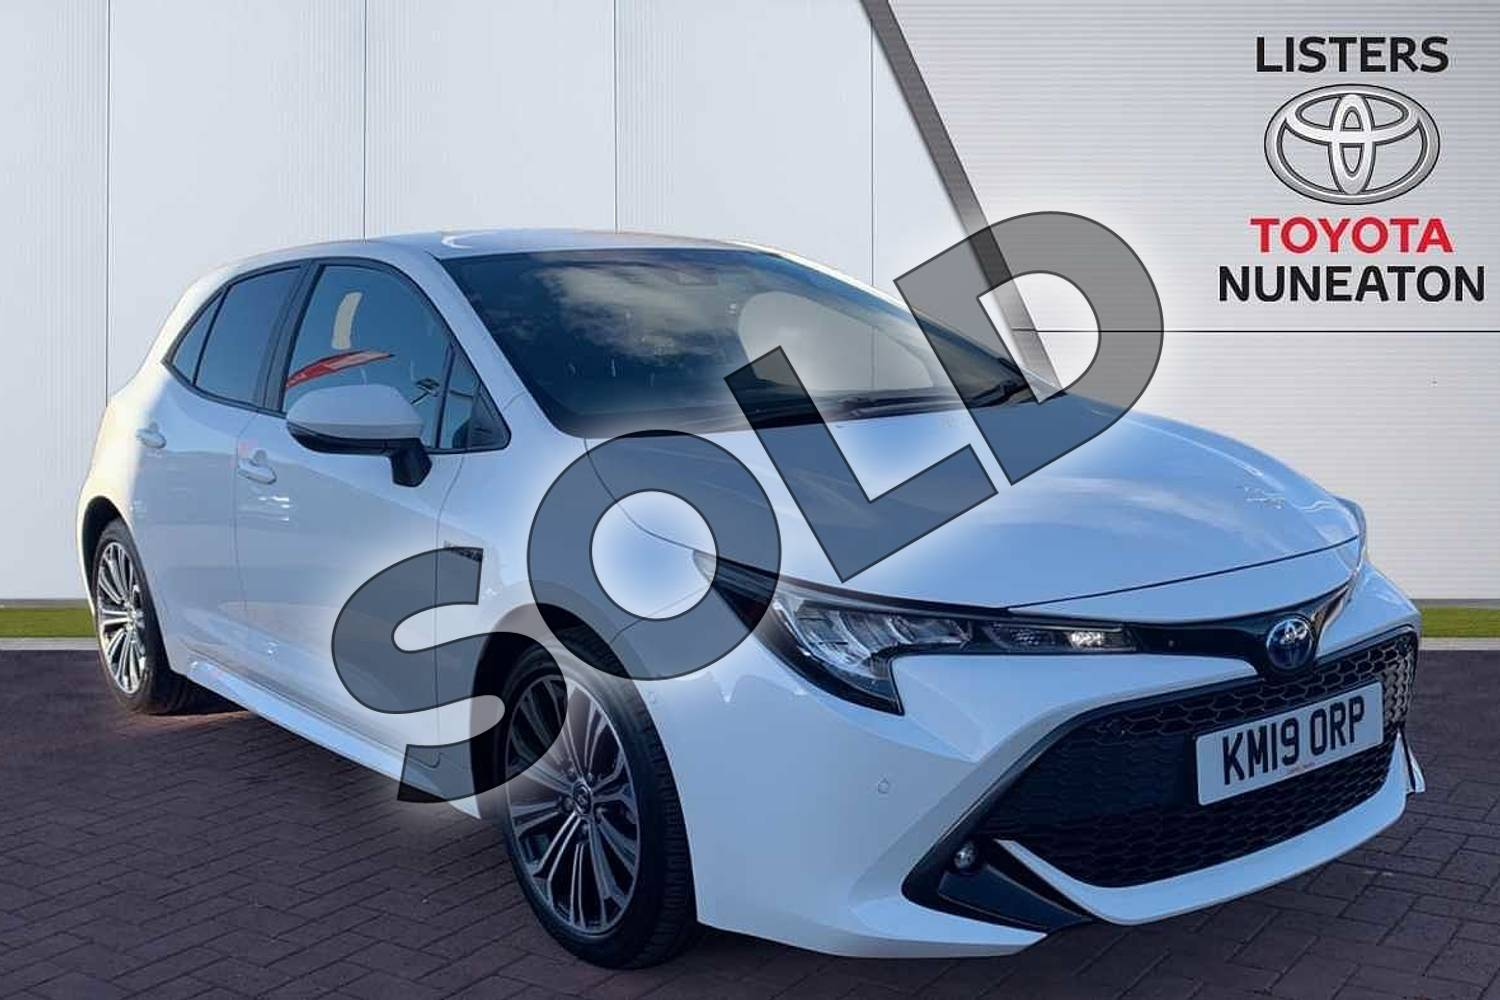 2019 Toyota Corolla Hatchback 1.8 VVT-i Hybrid Design 5dr CVT in White at Listers Toyota Nuneaton